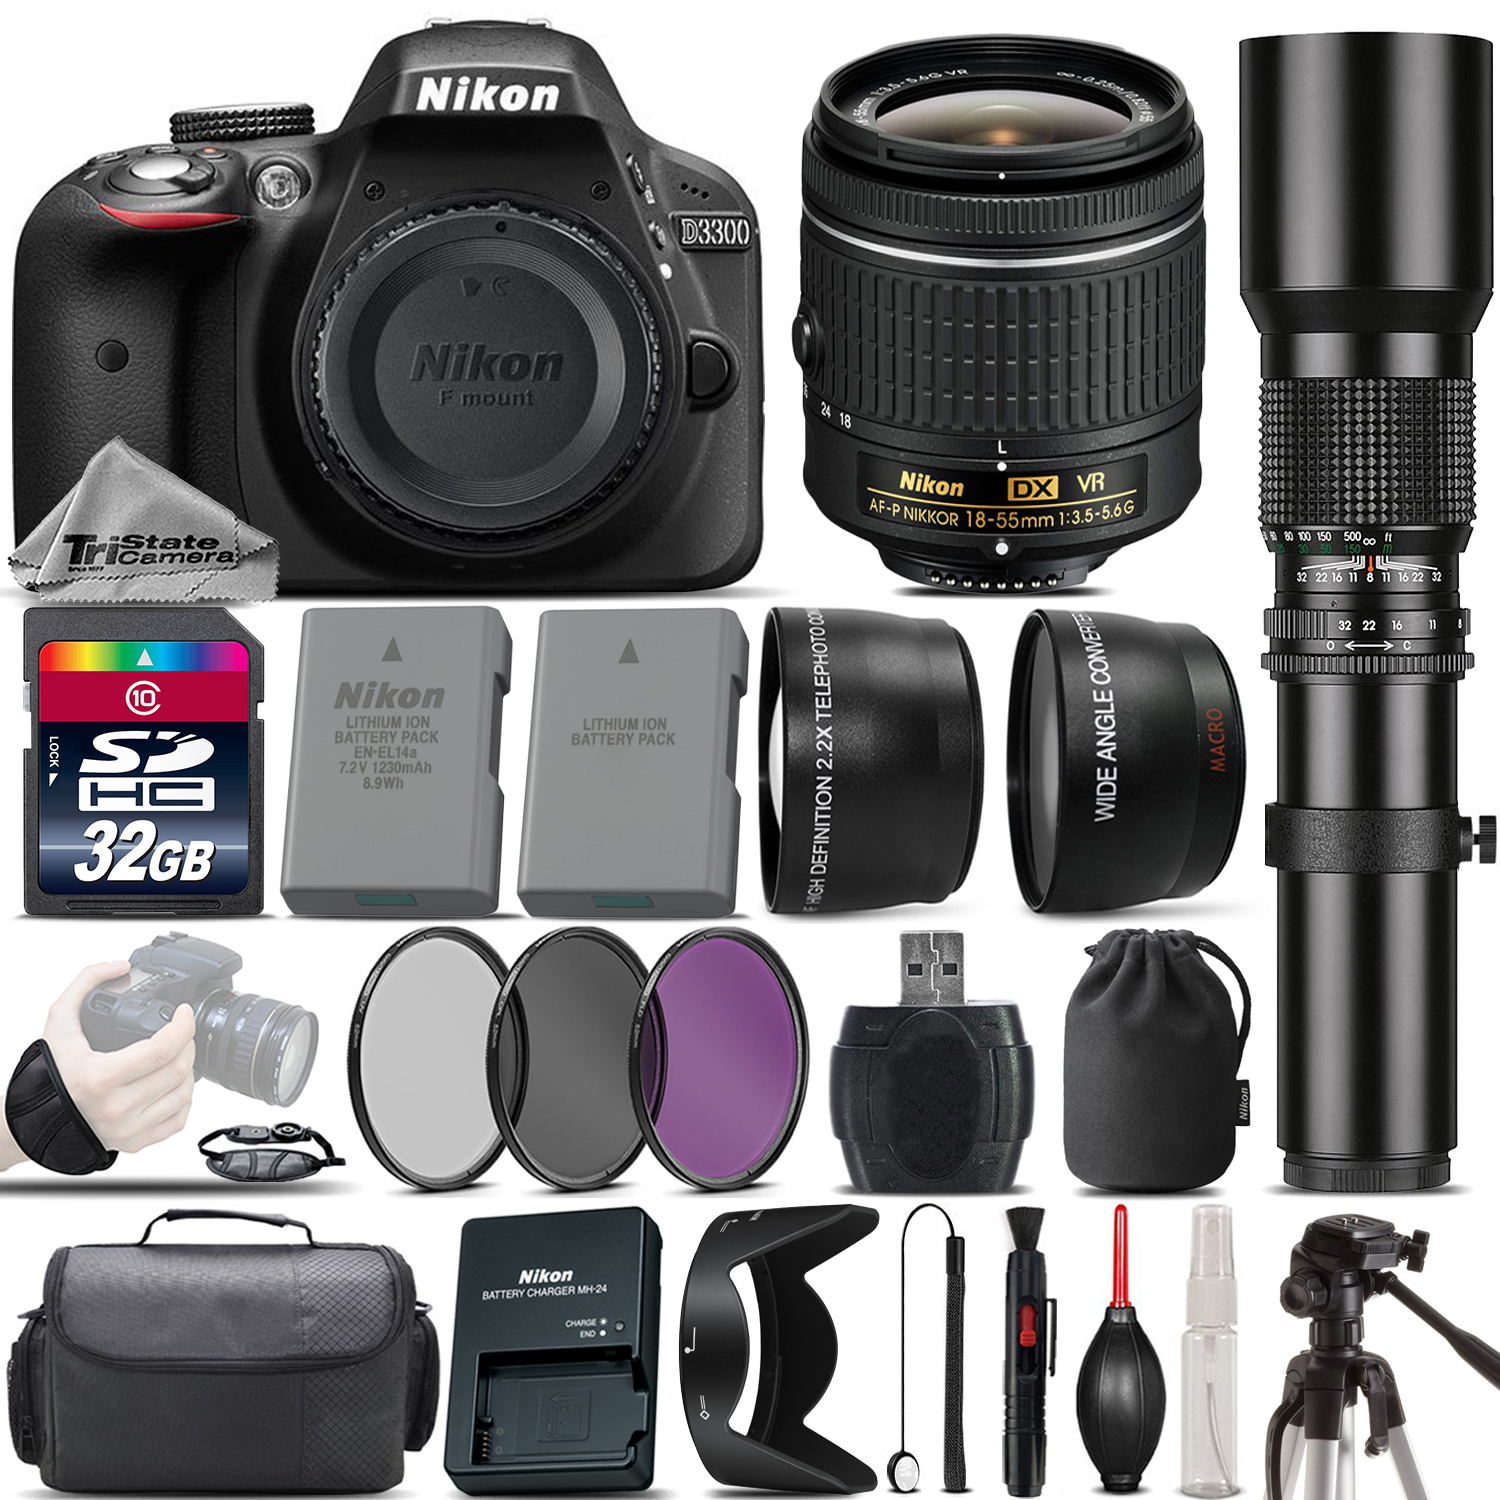 Nikon D3300 DSLR Camera + Nikon 18-55mm VR Lens + 500mm Telephoto Lens -32GB Kit